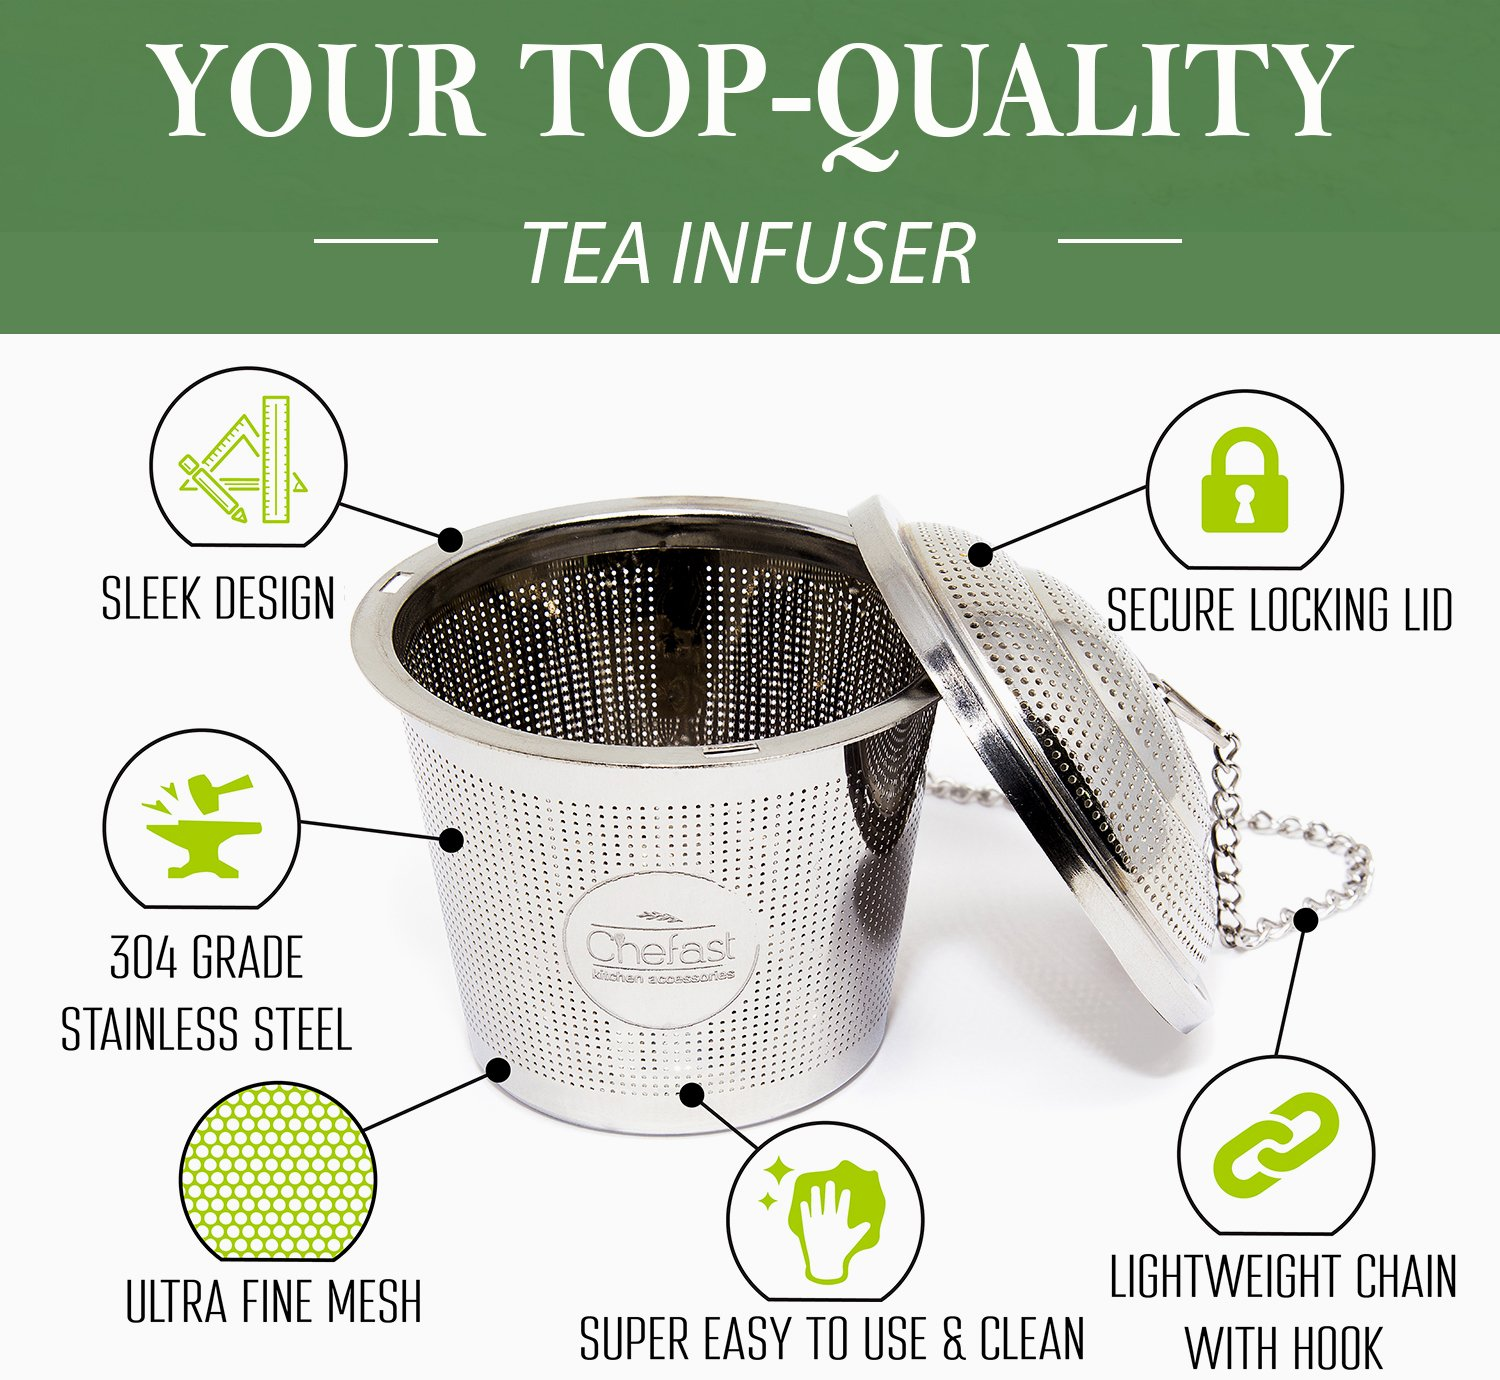 Tea Infuser Set by Chefast (2+1 Pack) - Combo Kit of 1 Large and 2 Single Cup Loose Leaf Infusers, Plus Metal Scoop with Clip - Reusable Stainless Steel Strainers | Diffusers | Balls | Steepers by Chefast (Image #5)